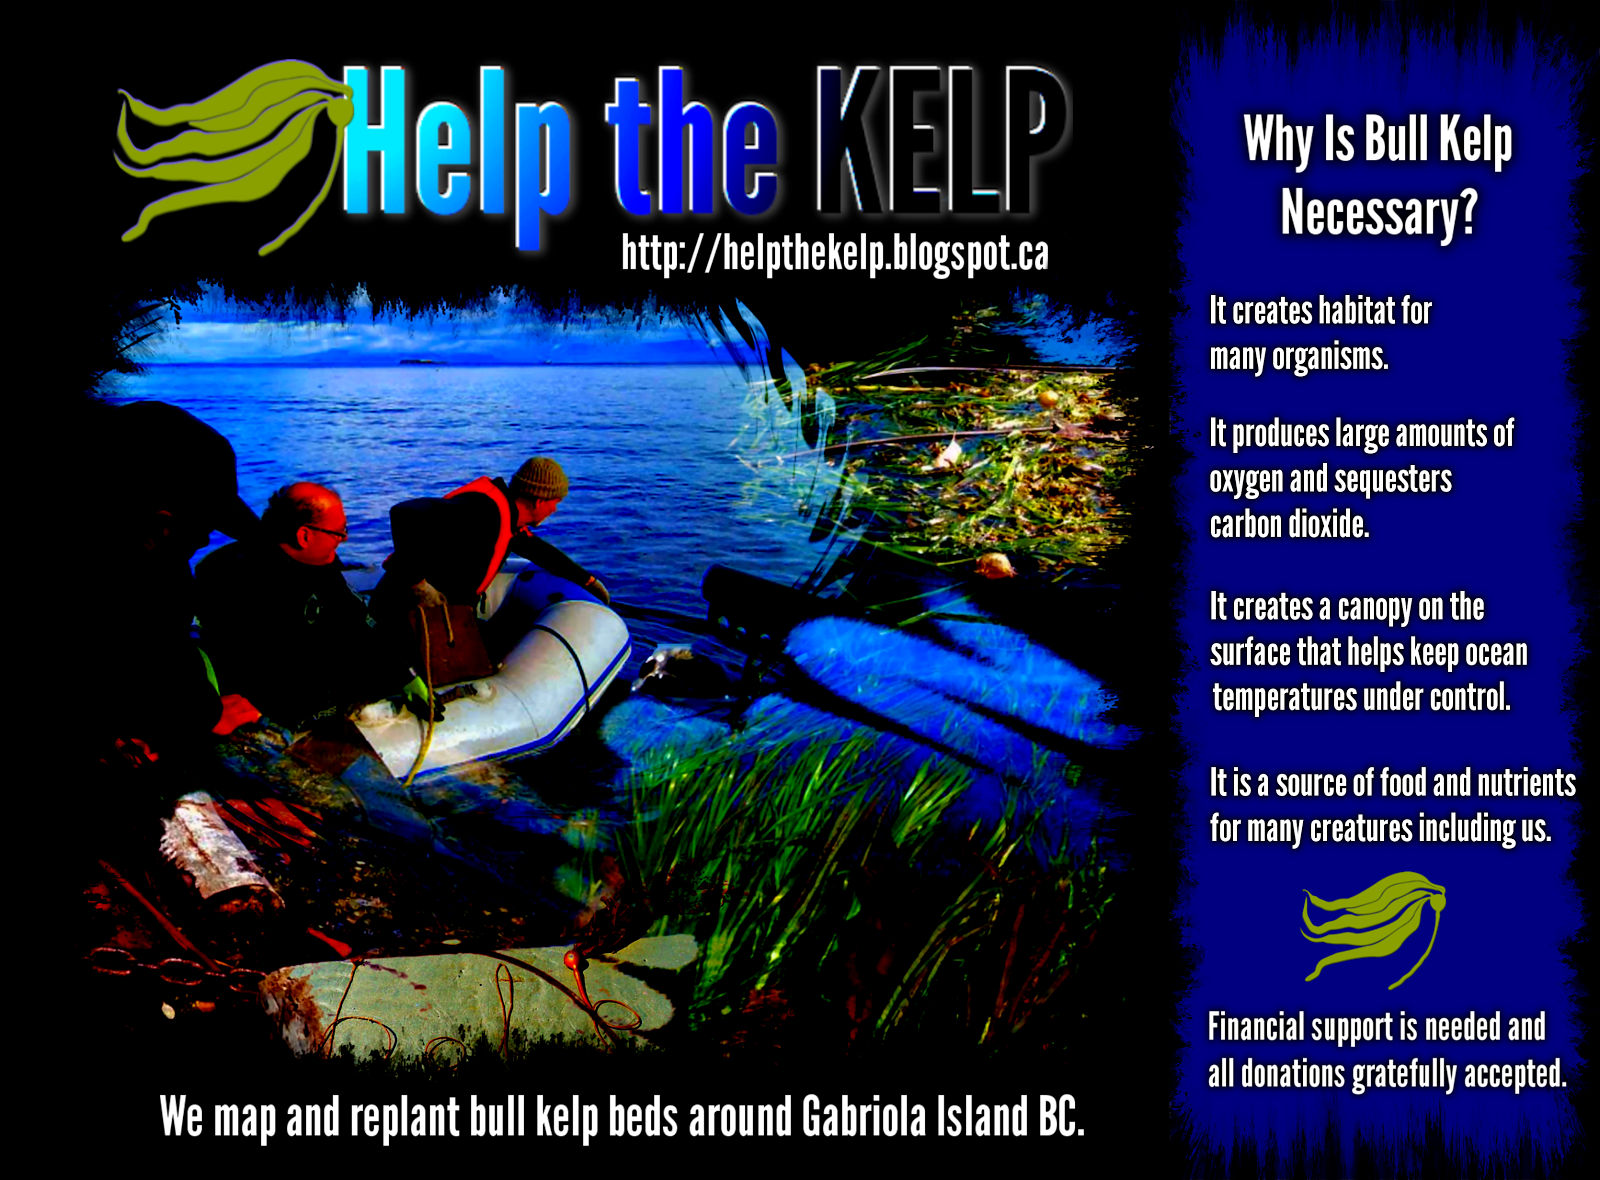 Why is bull kelp necessary?